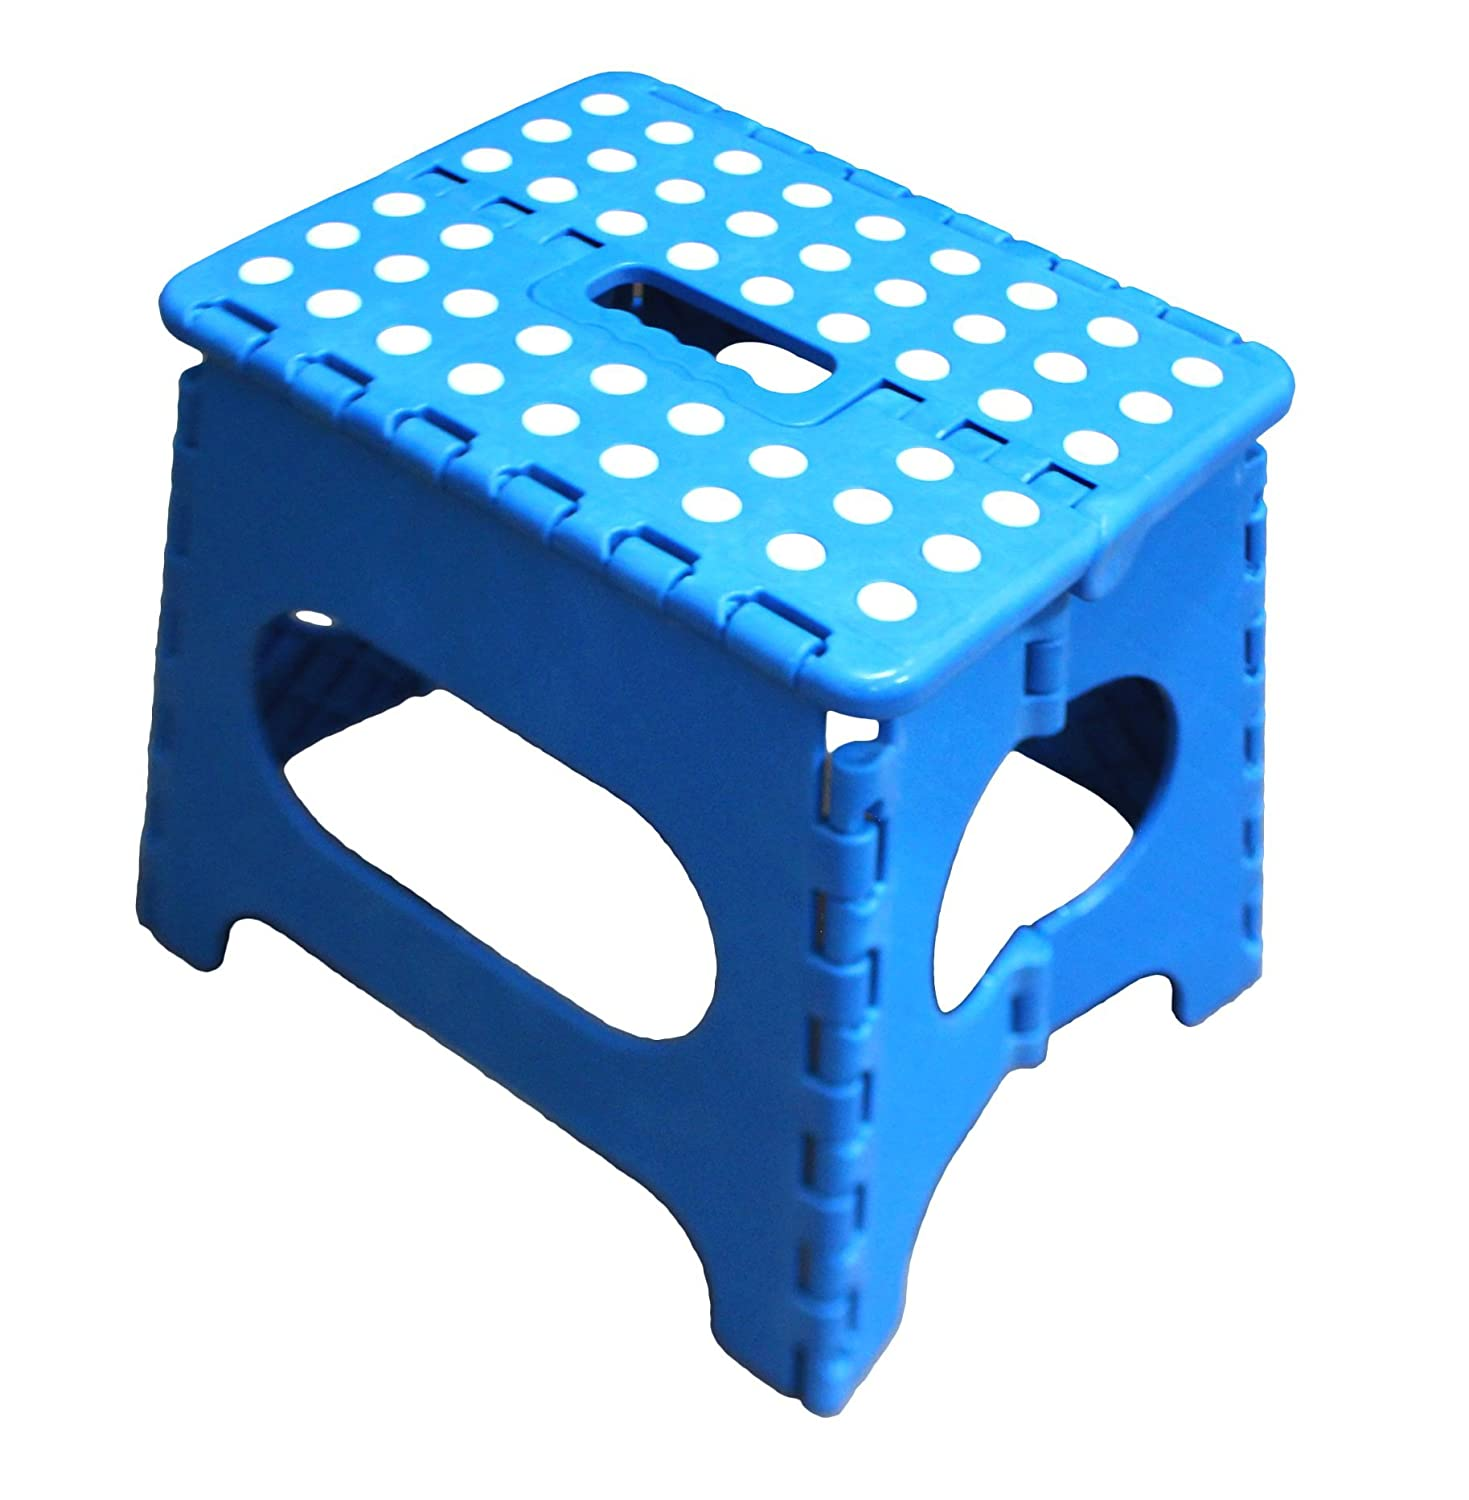 Amazon.com: Jeronic Super Strong Folding Step Stool for Adults and ...